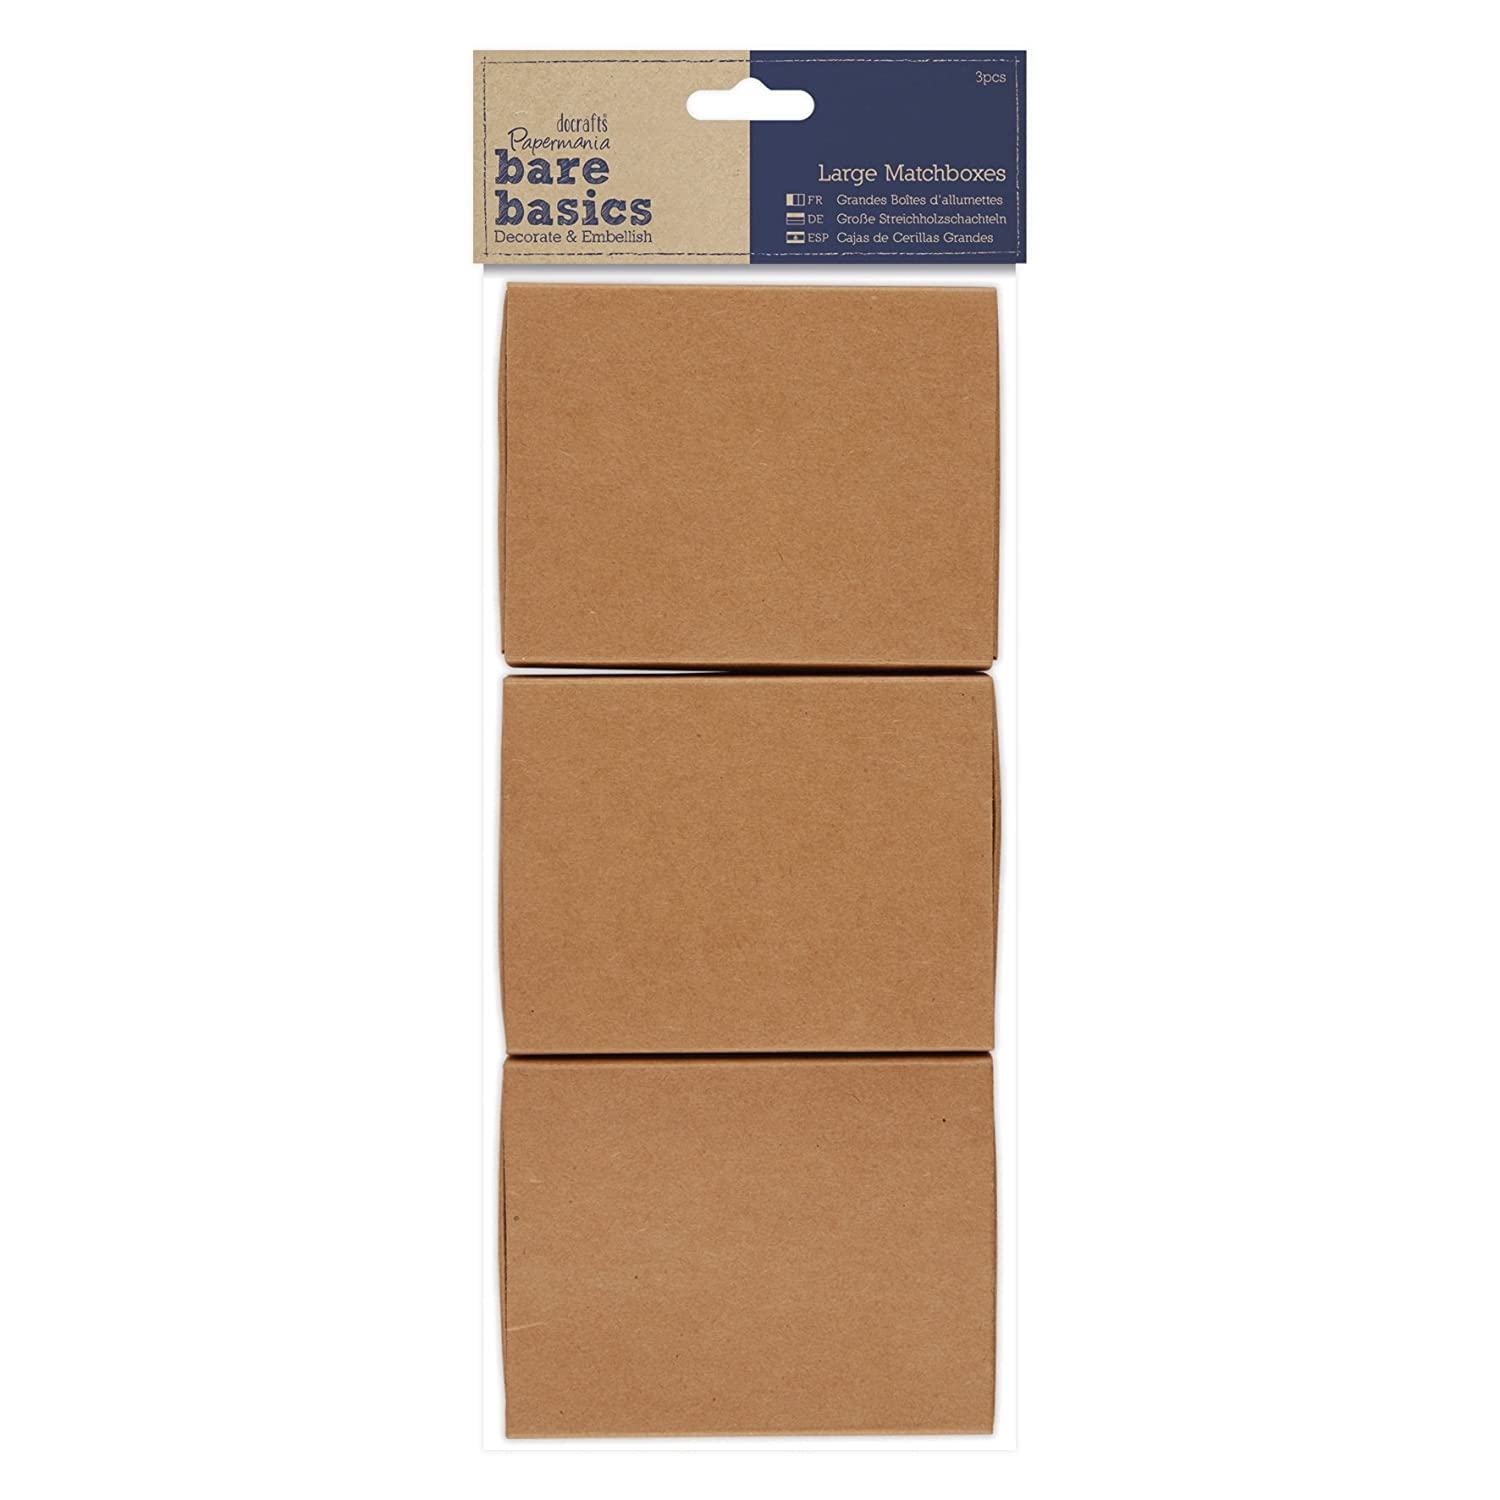 Amazon.com: DOCrafts PMA174652 Papermania Bare Basics Medium Matchboxes (4 Pack), Brown: Arts, Crafts & Sewing